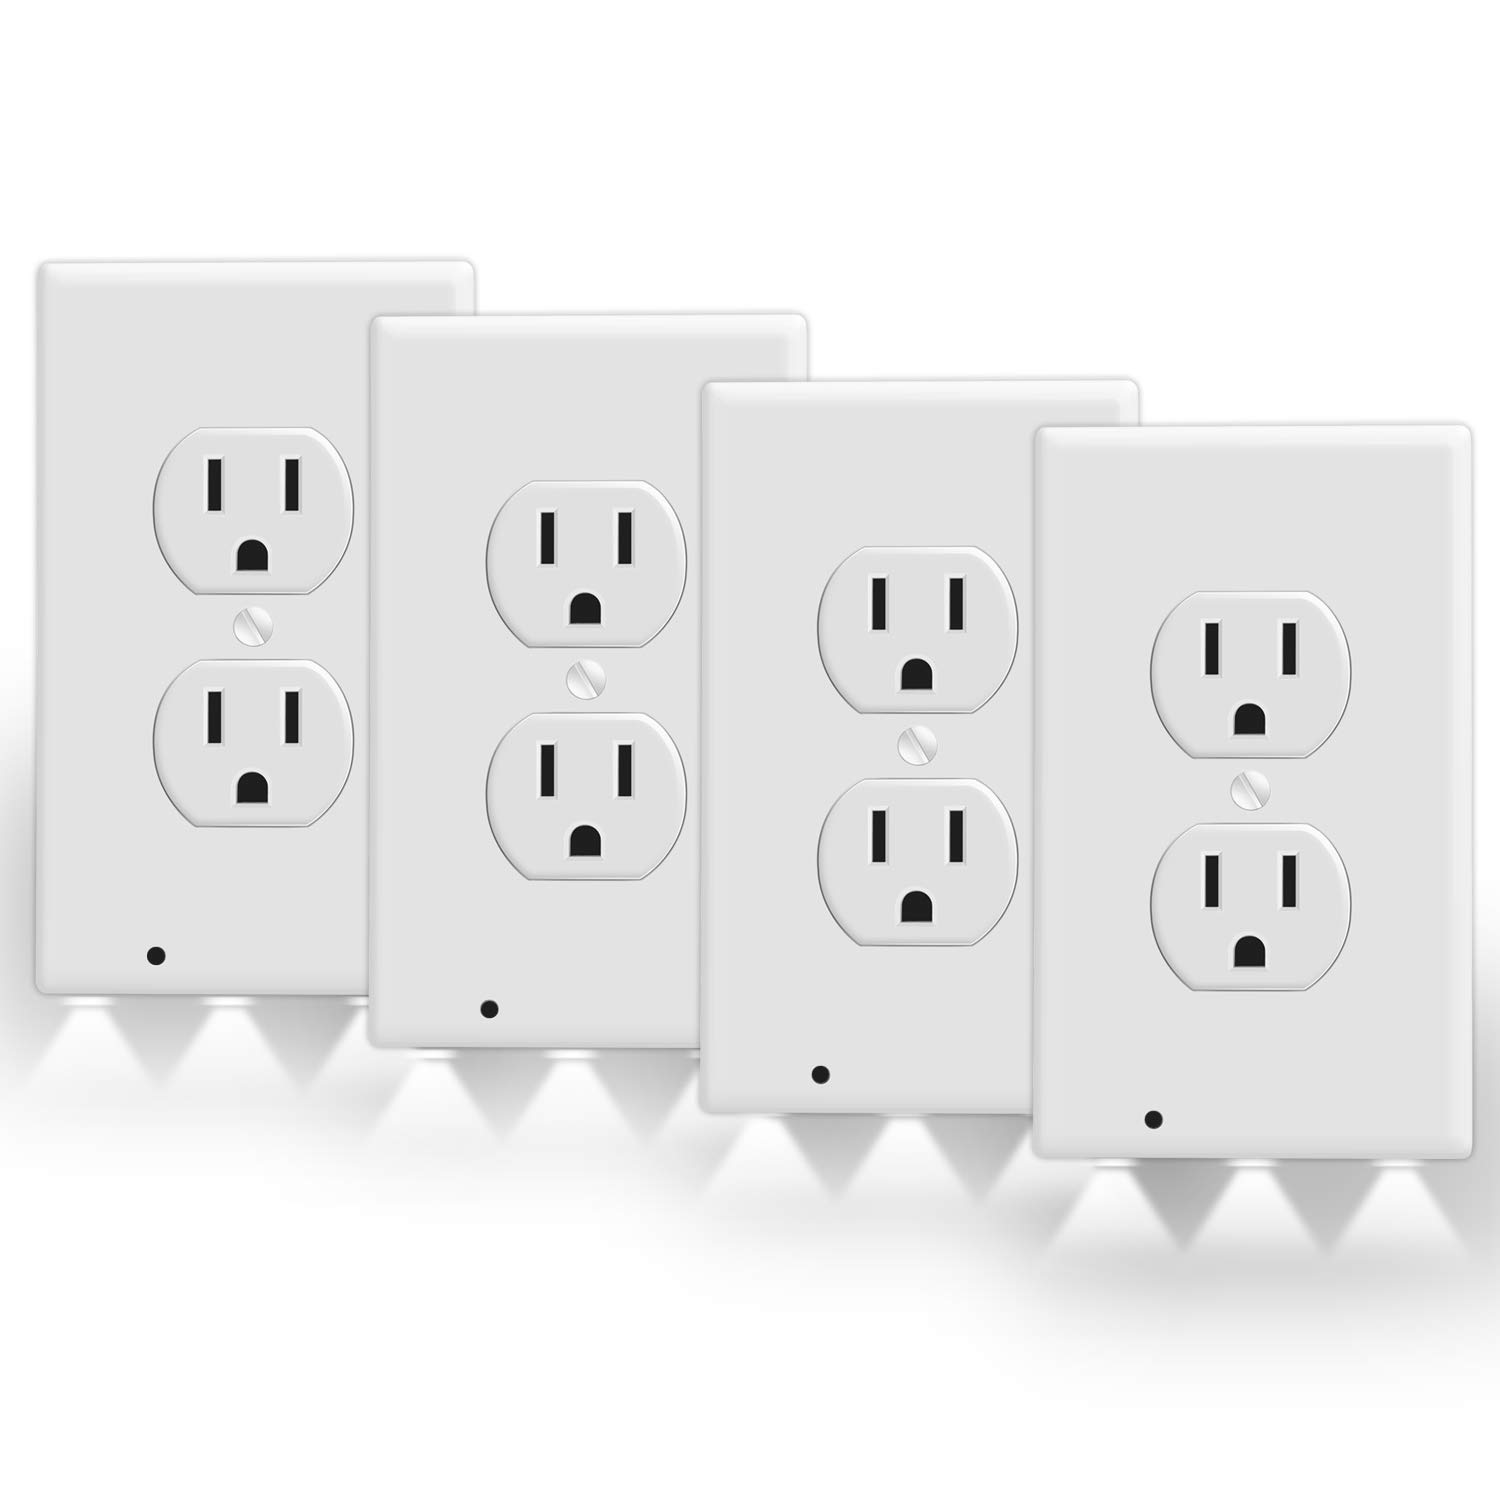 Dr.Fride Outlet Wall Plate With 3 LED Night Lights- No Batteries Or Wires, Pack of 4, White Guidelight Wall Plate Socket Cover for Stairs, Kids Bedroom, Bathroom, Hallway